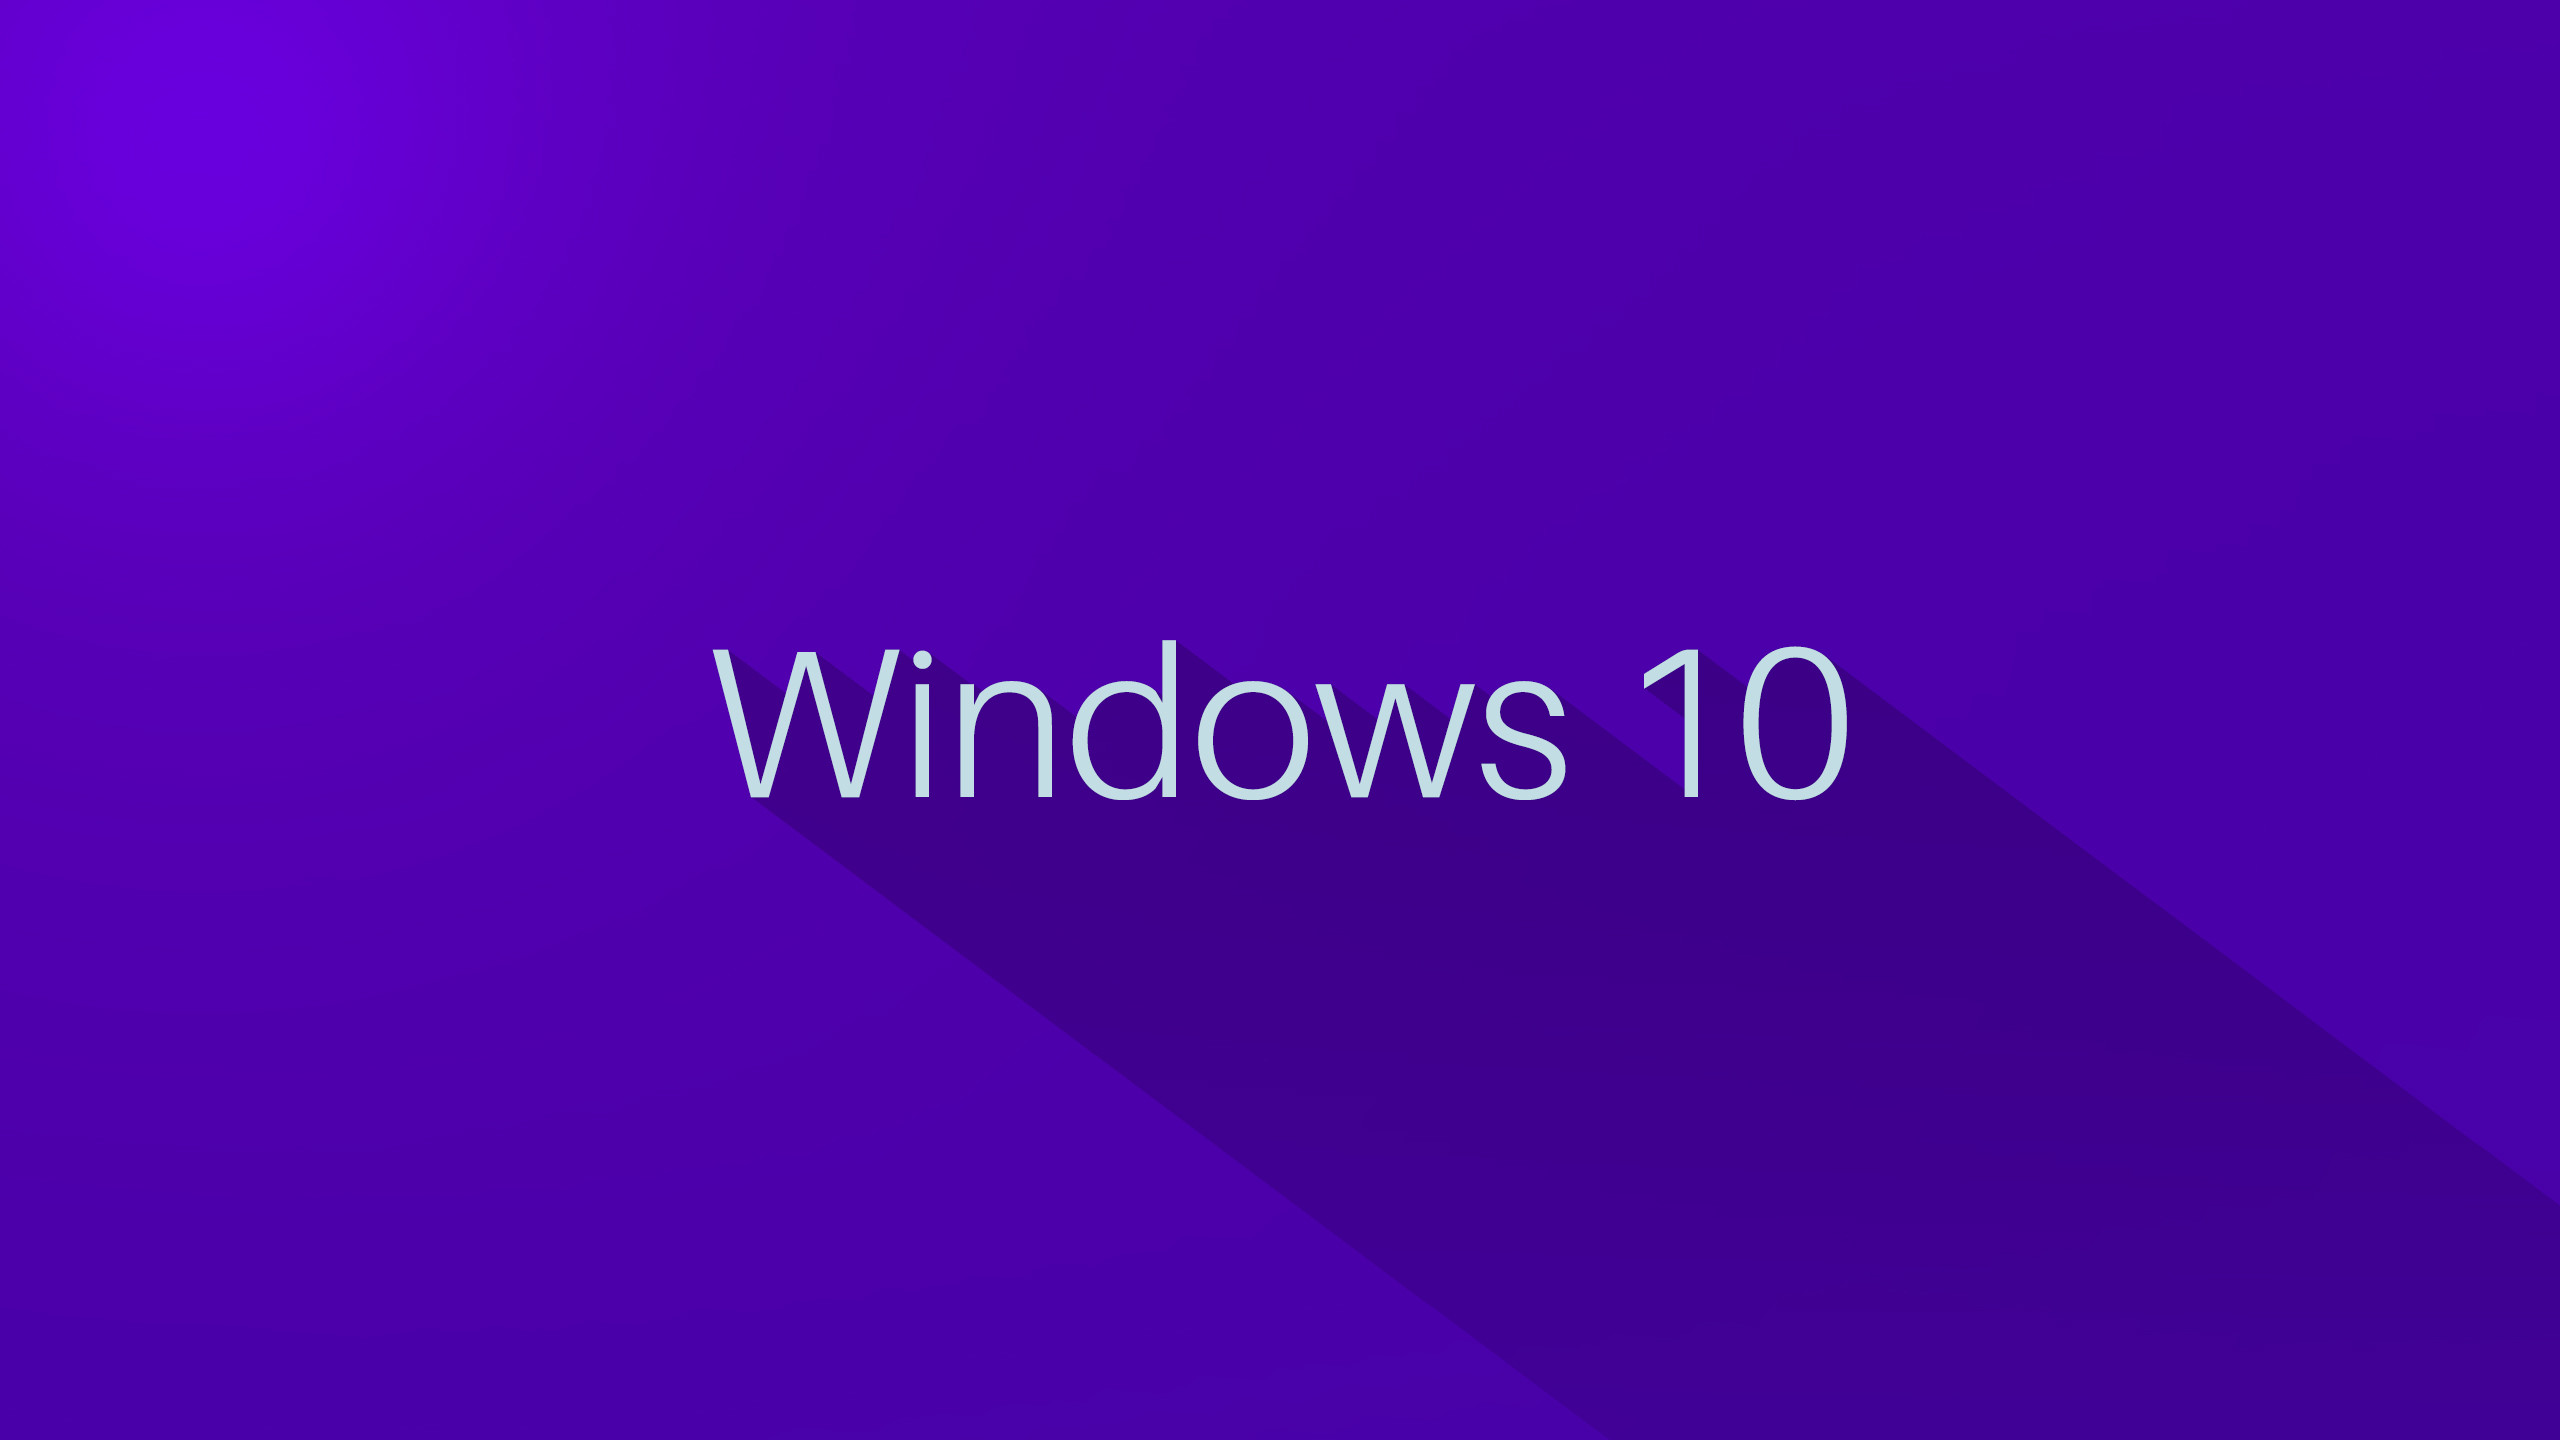 2560x1440 Windows-10-Wallpaper-1080p-Full-HD-Logo-on-